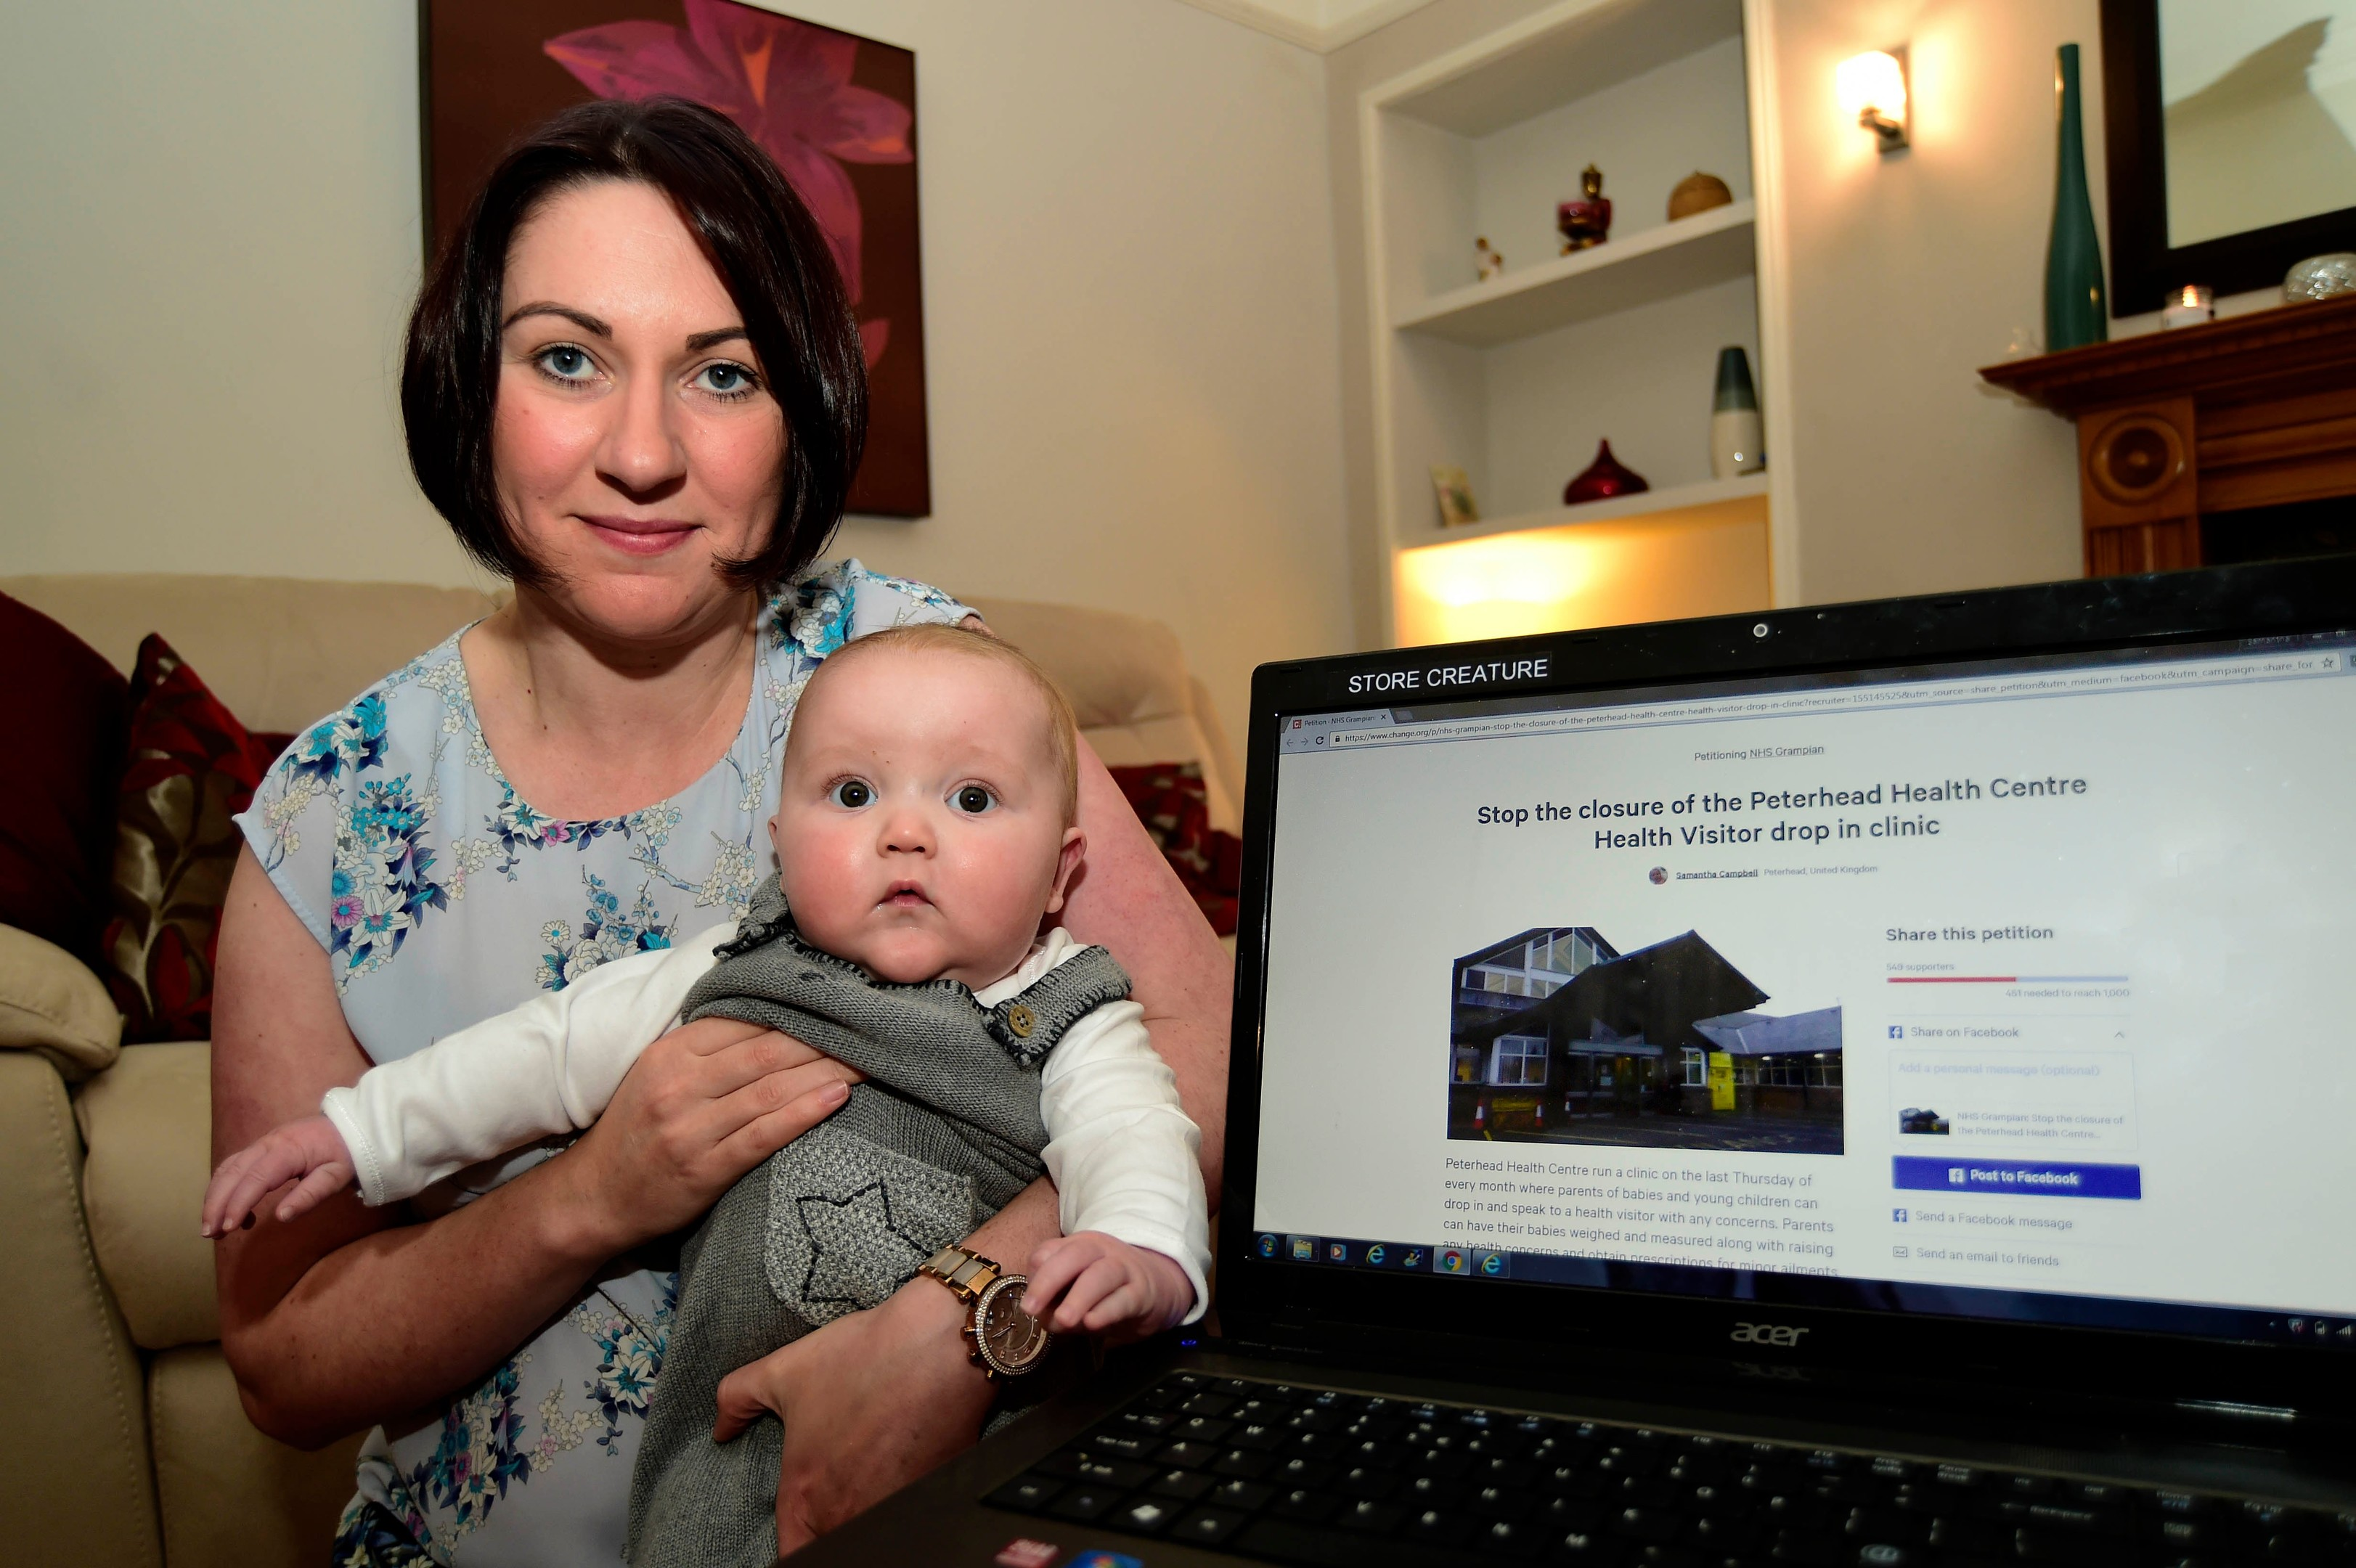 Samantha Campbell, pictured with baby Lewis, wants drop-in clinics to stay.